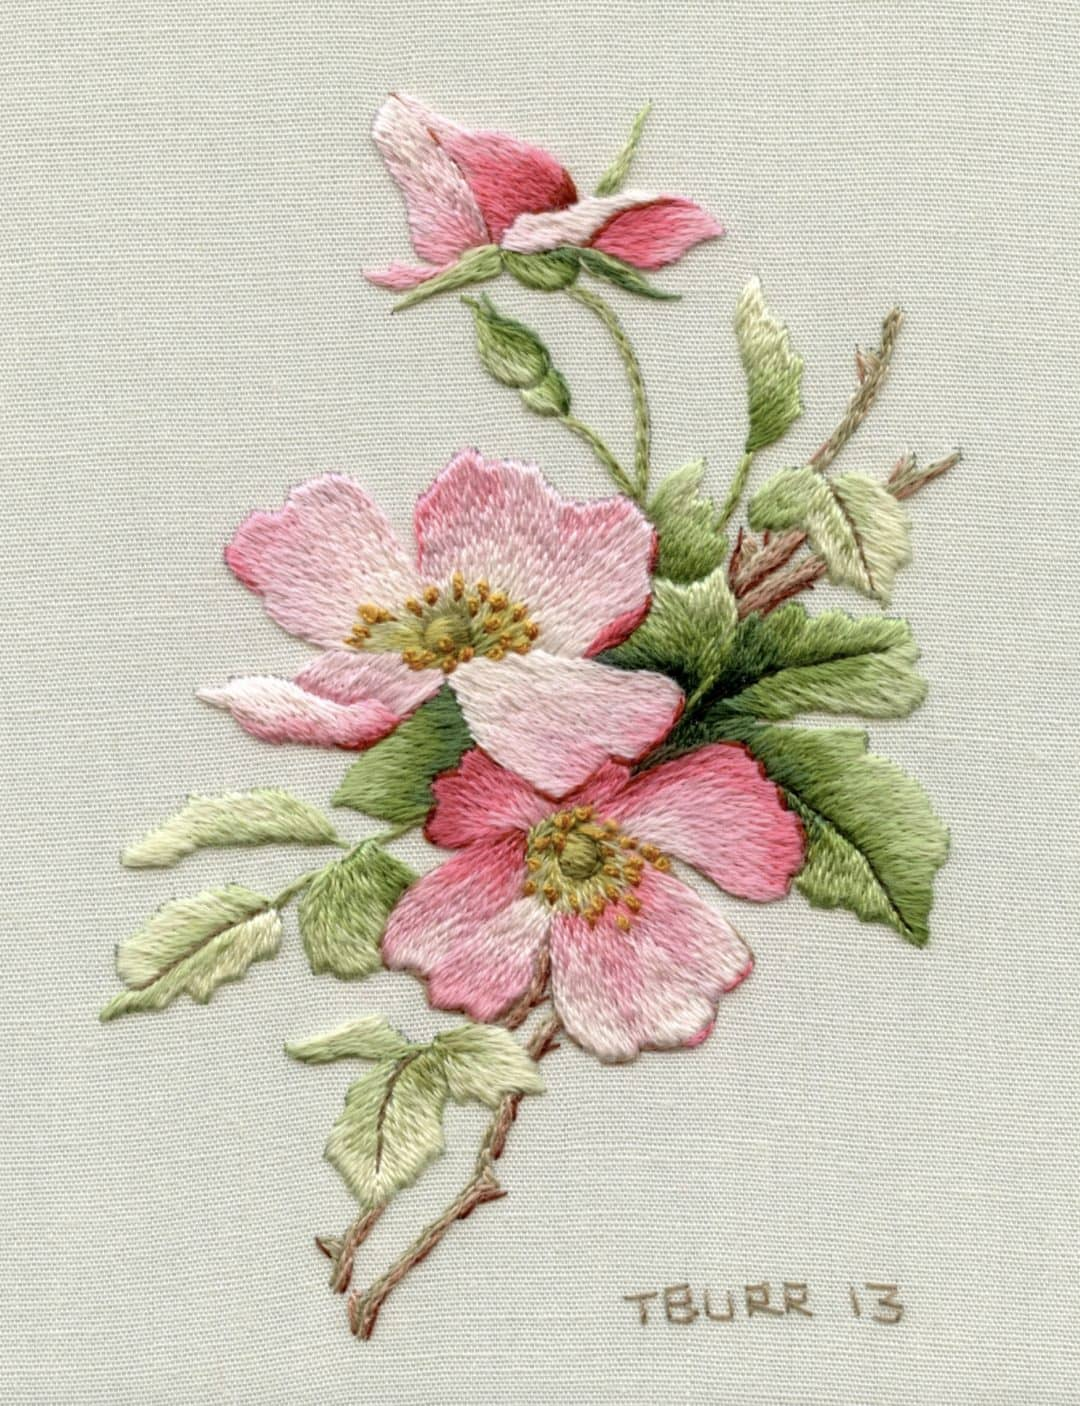 love this wild rose dog rose embroidery patterns by Trish Burr - just one of the beautiful crewel embroidery ideas I've shared with all the links you need to buy the patterns and to get your free PDF download patterns too! #crewel #embroidery #pattern #wildrose #rose